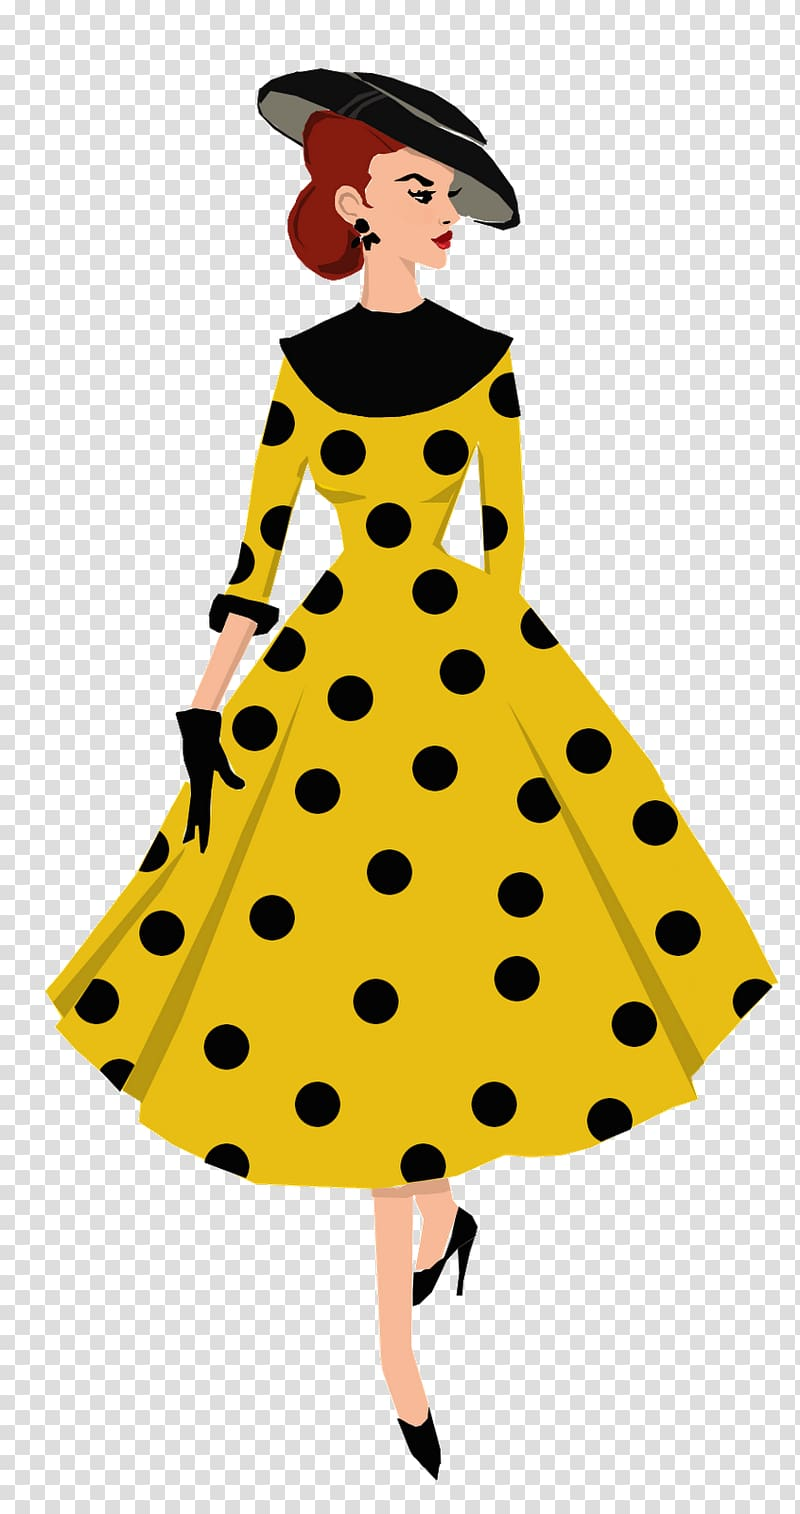 Polka dot 1950s Fashion illustration Drawing, model.